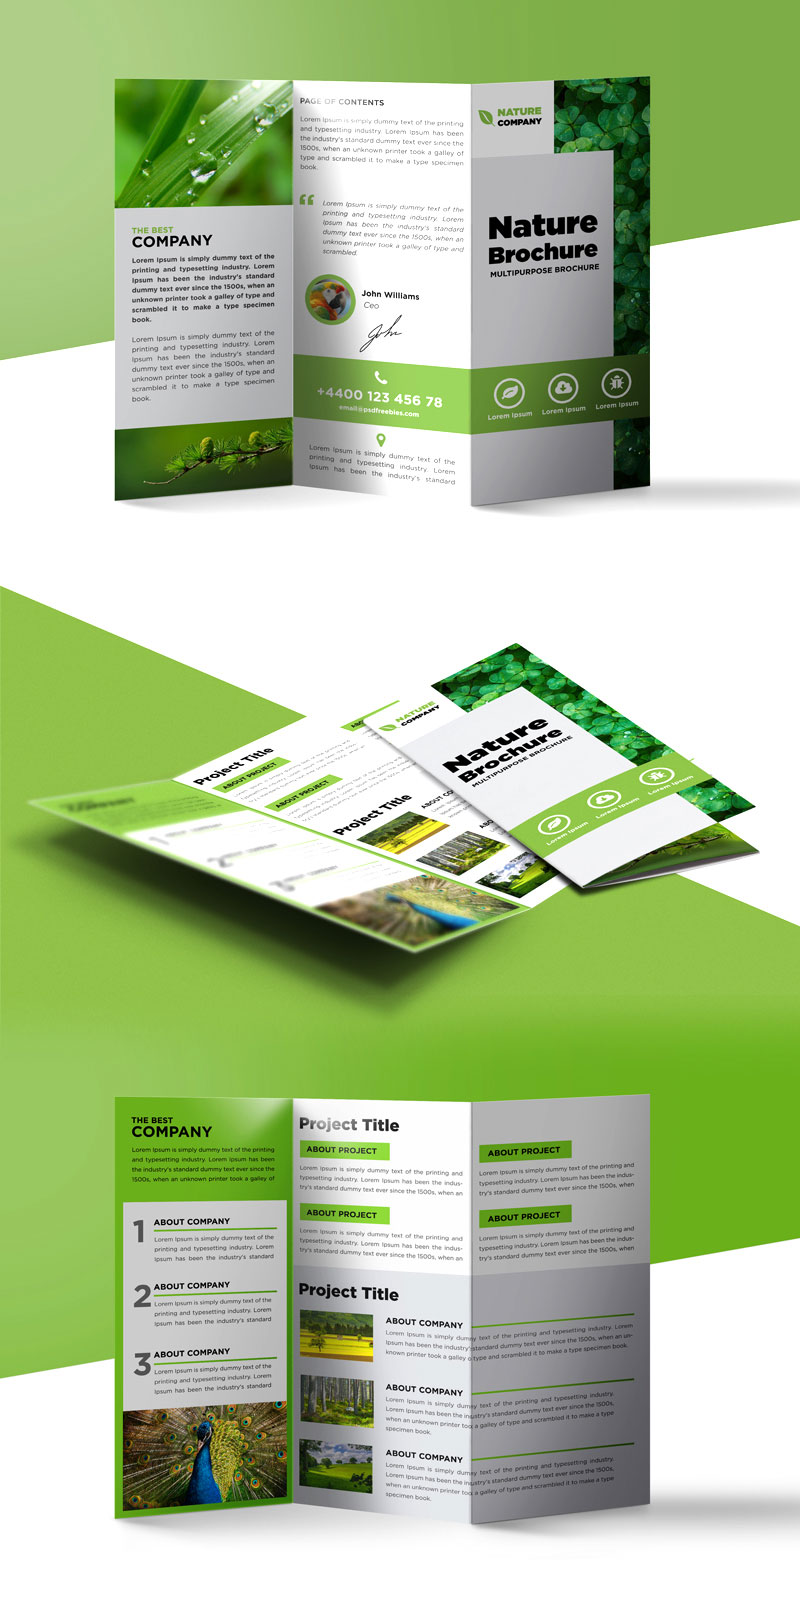 Nature tri fold brochure template free psd for Free brochure psd templates download